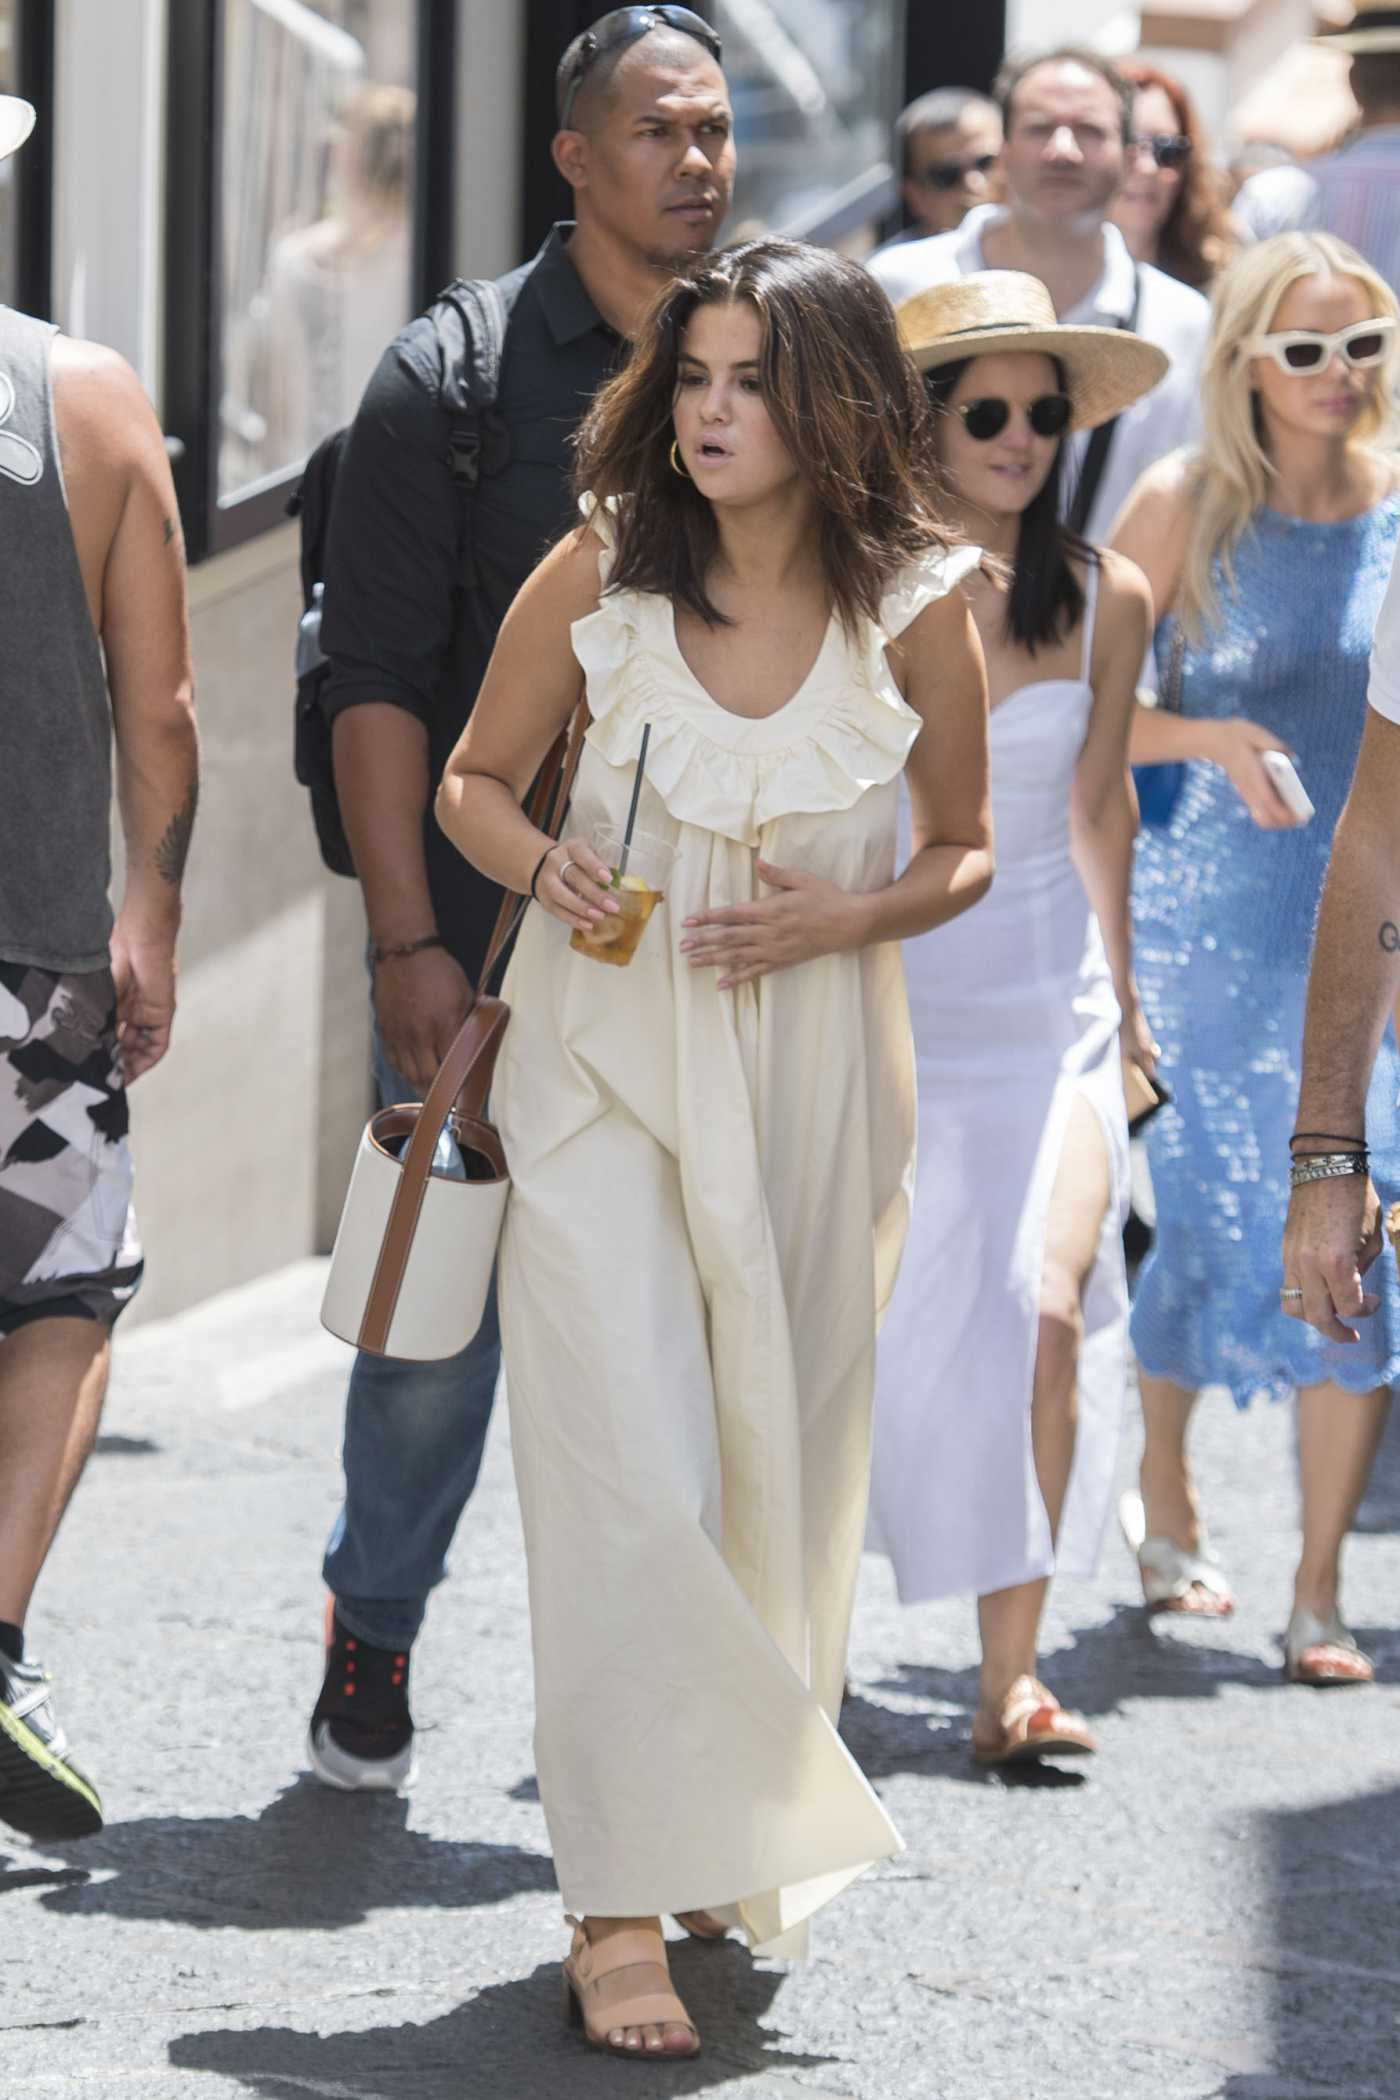 Selena Gomez in a Beige Sundress Was Seen Out with Her Friends in Capri 07/23/2019